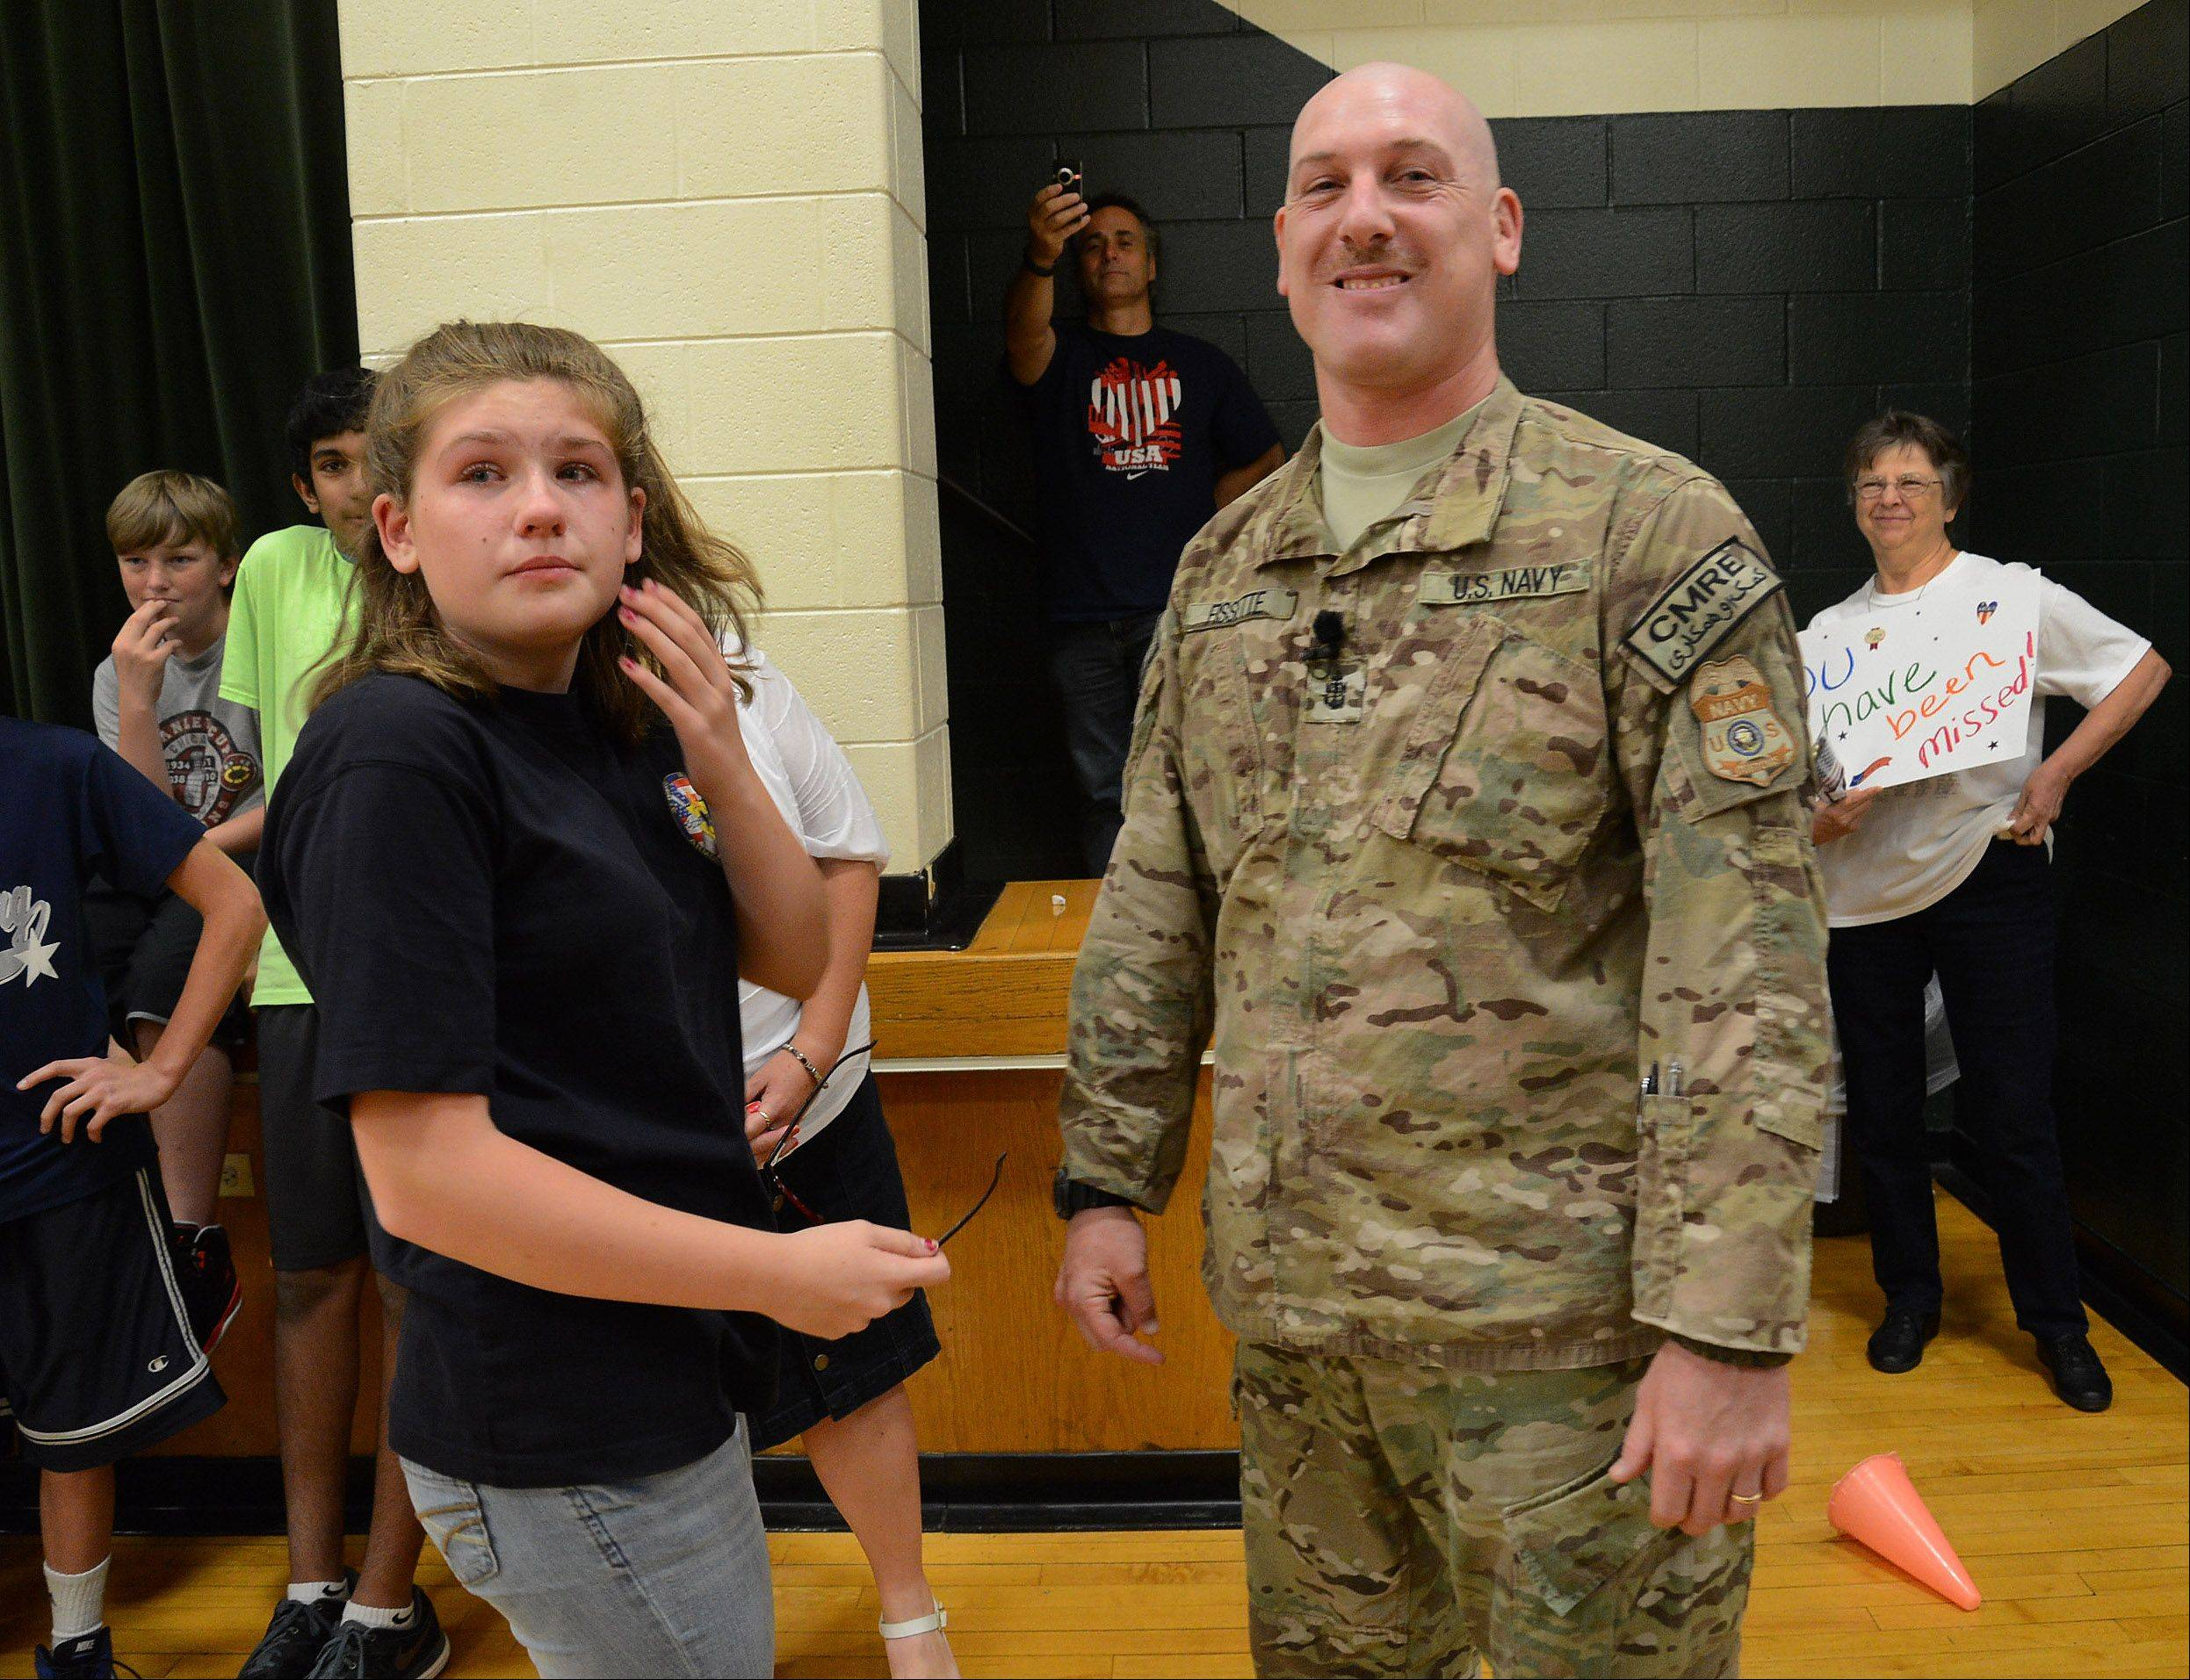 Navy Chief Gunner's Mate Patrick Fissette is all smiles after surprising his daughter, Kailey, at Mead Junior High School in Elk Grove Village Friday after returning home from his last tour of duty.